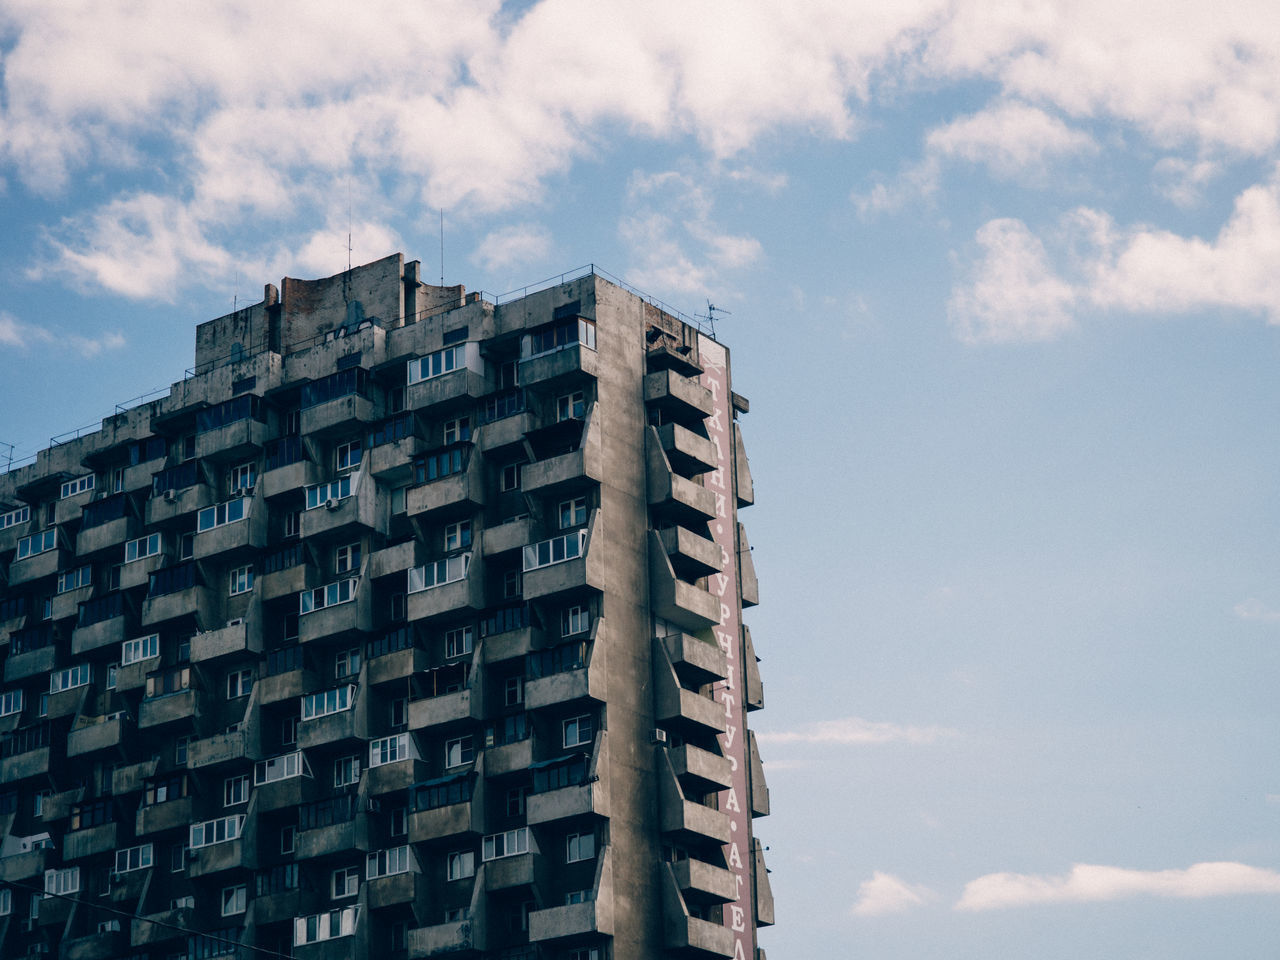 Apartment Architecture Building Exterior Built Structure Cloud - Sky Day Low Angle View No People Outdoors Russia Samara Sky The Week On EyeEm The Architect - 2017 EyeEm Awards